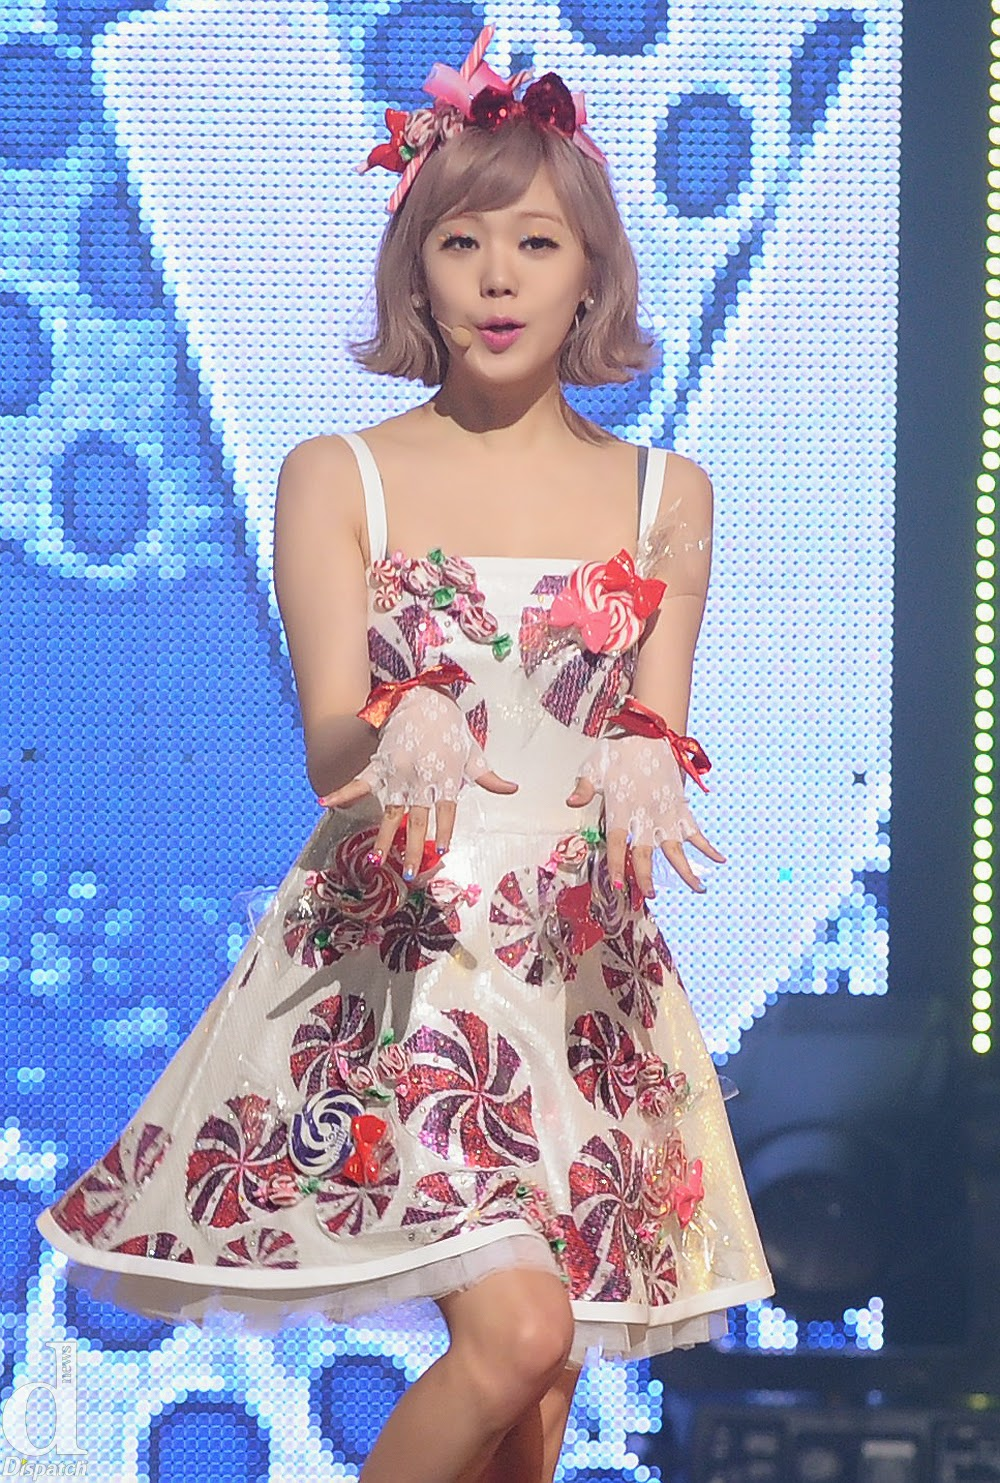 Lizzy Orange Caramel Catallena | www.imgkid.com - The ...